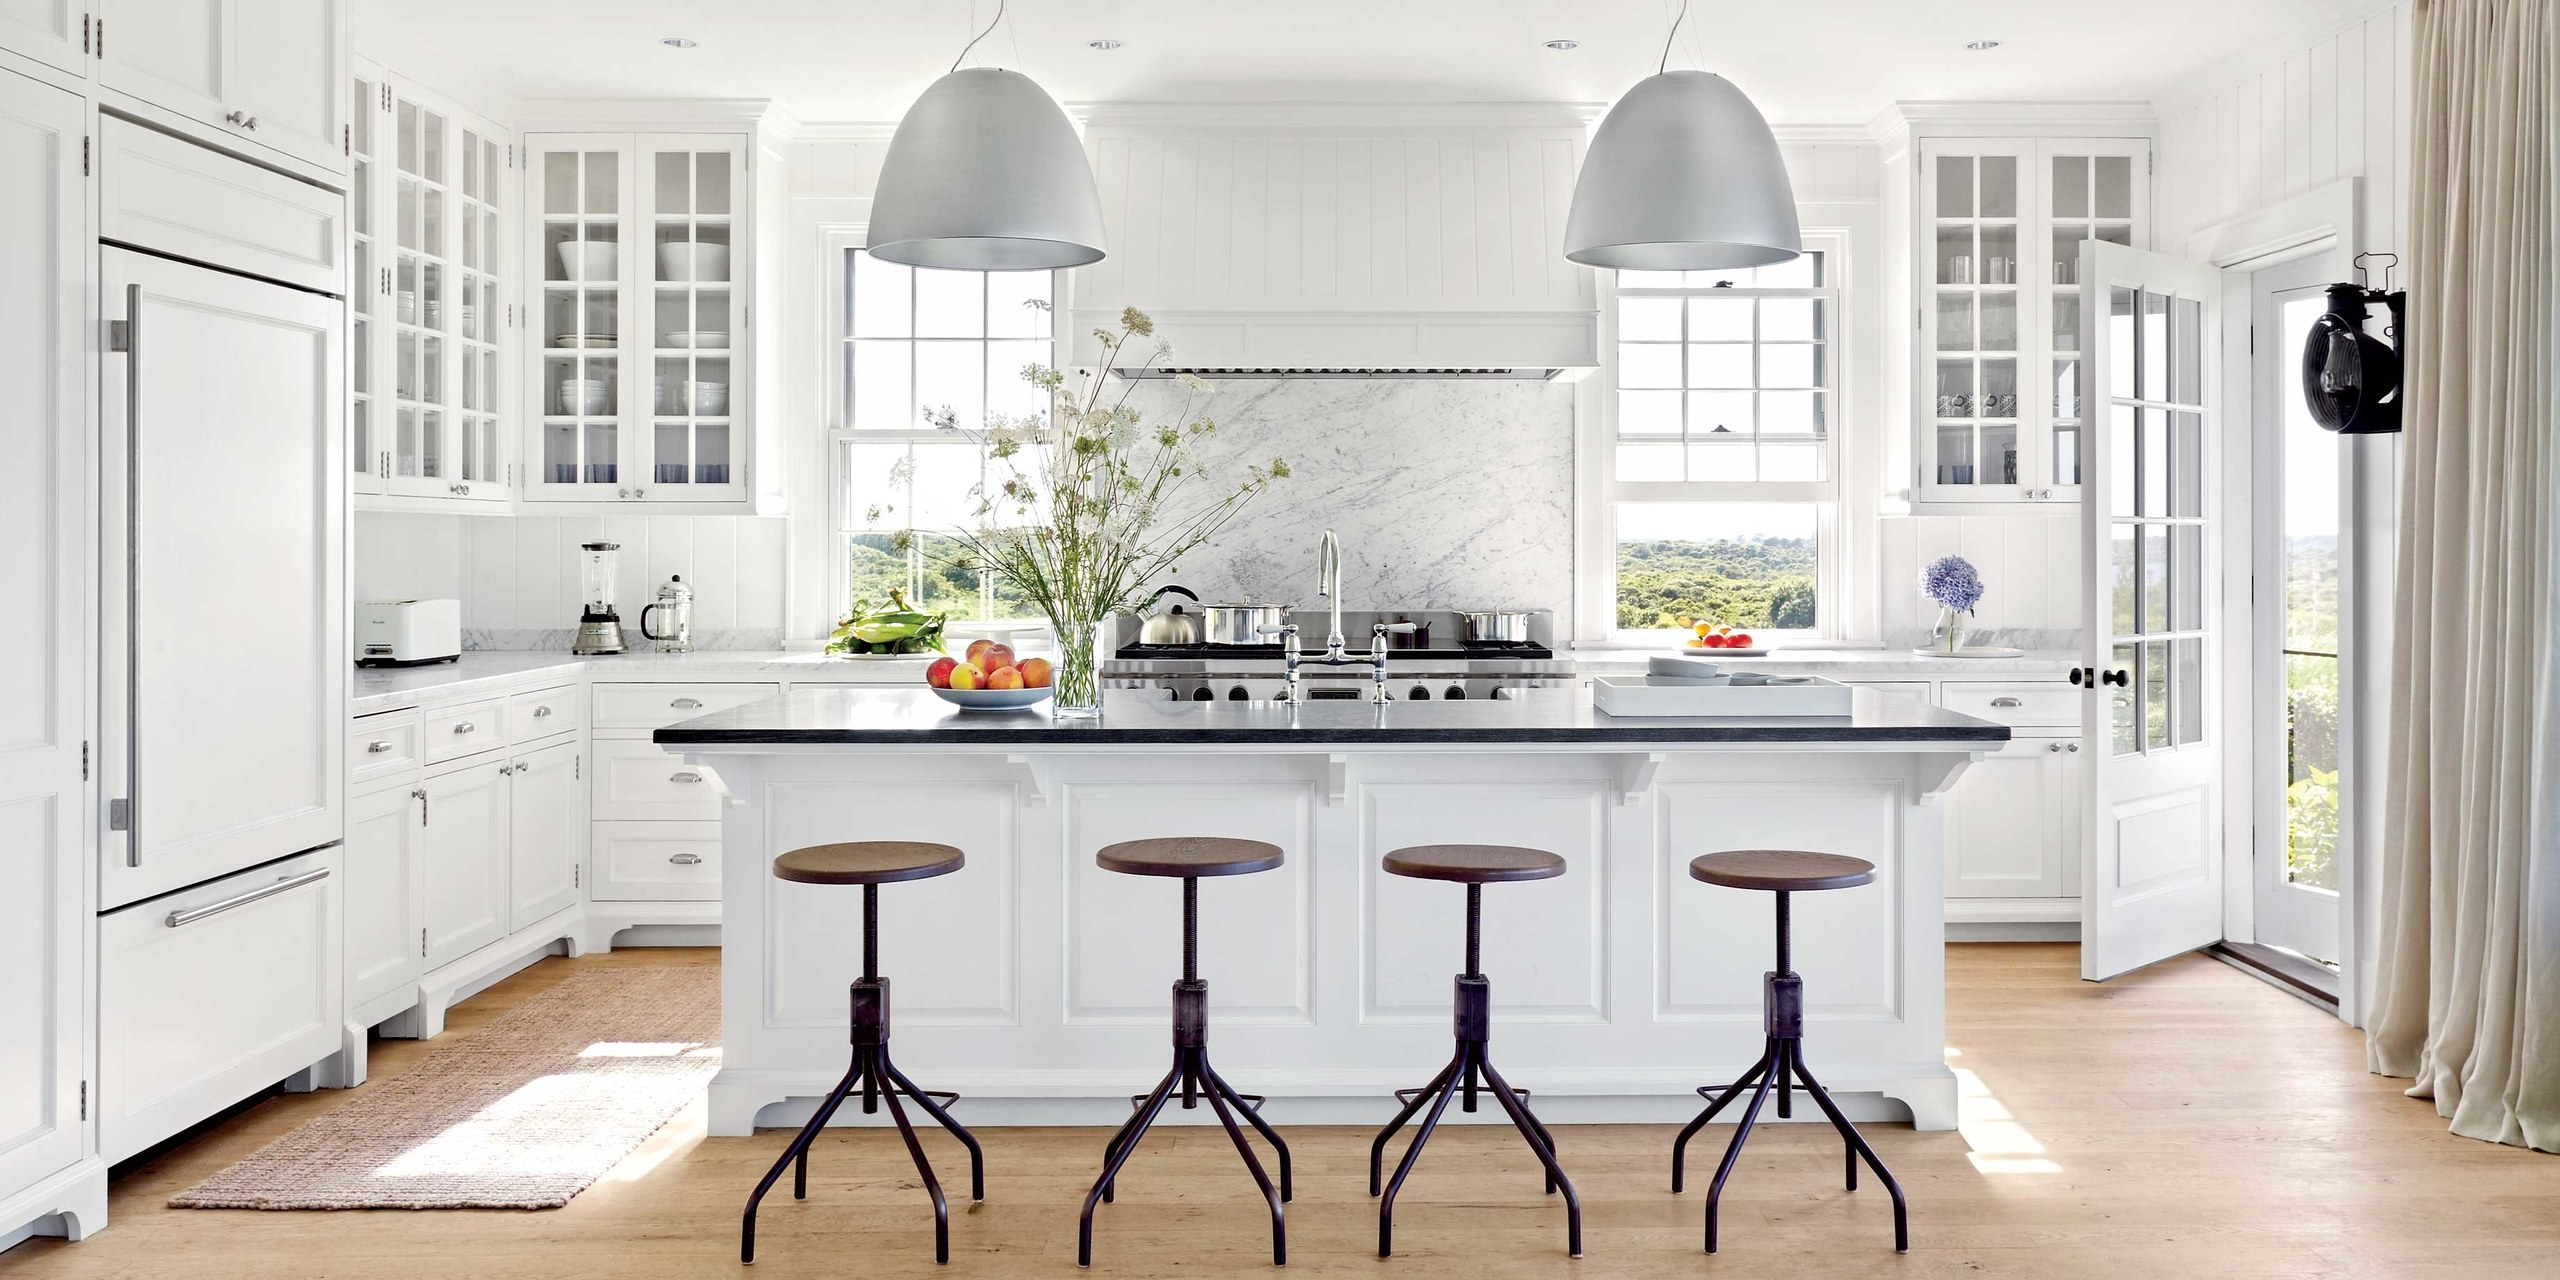 Searching for and keeping the very best pros in kitchen for Best kitchen renovations